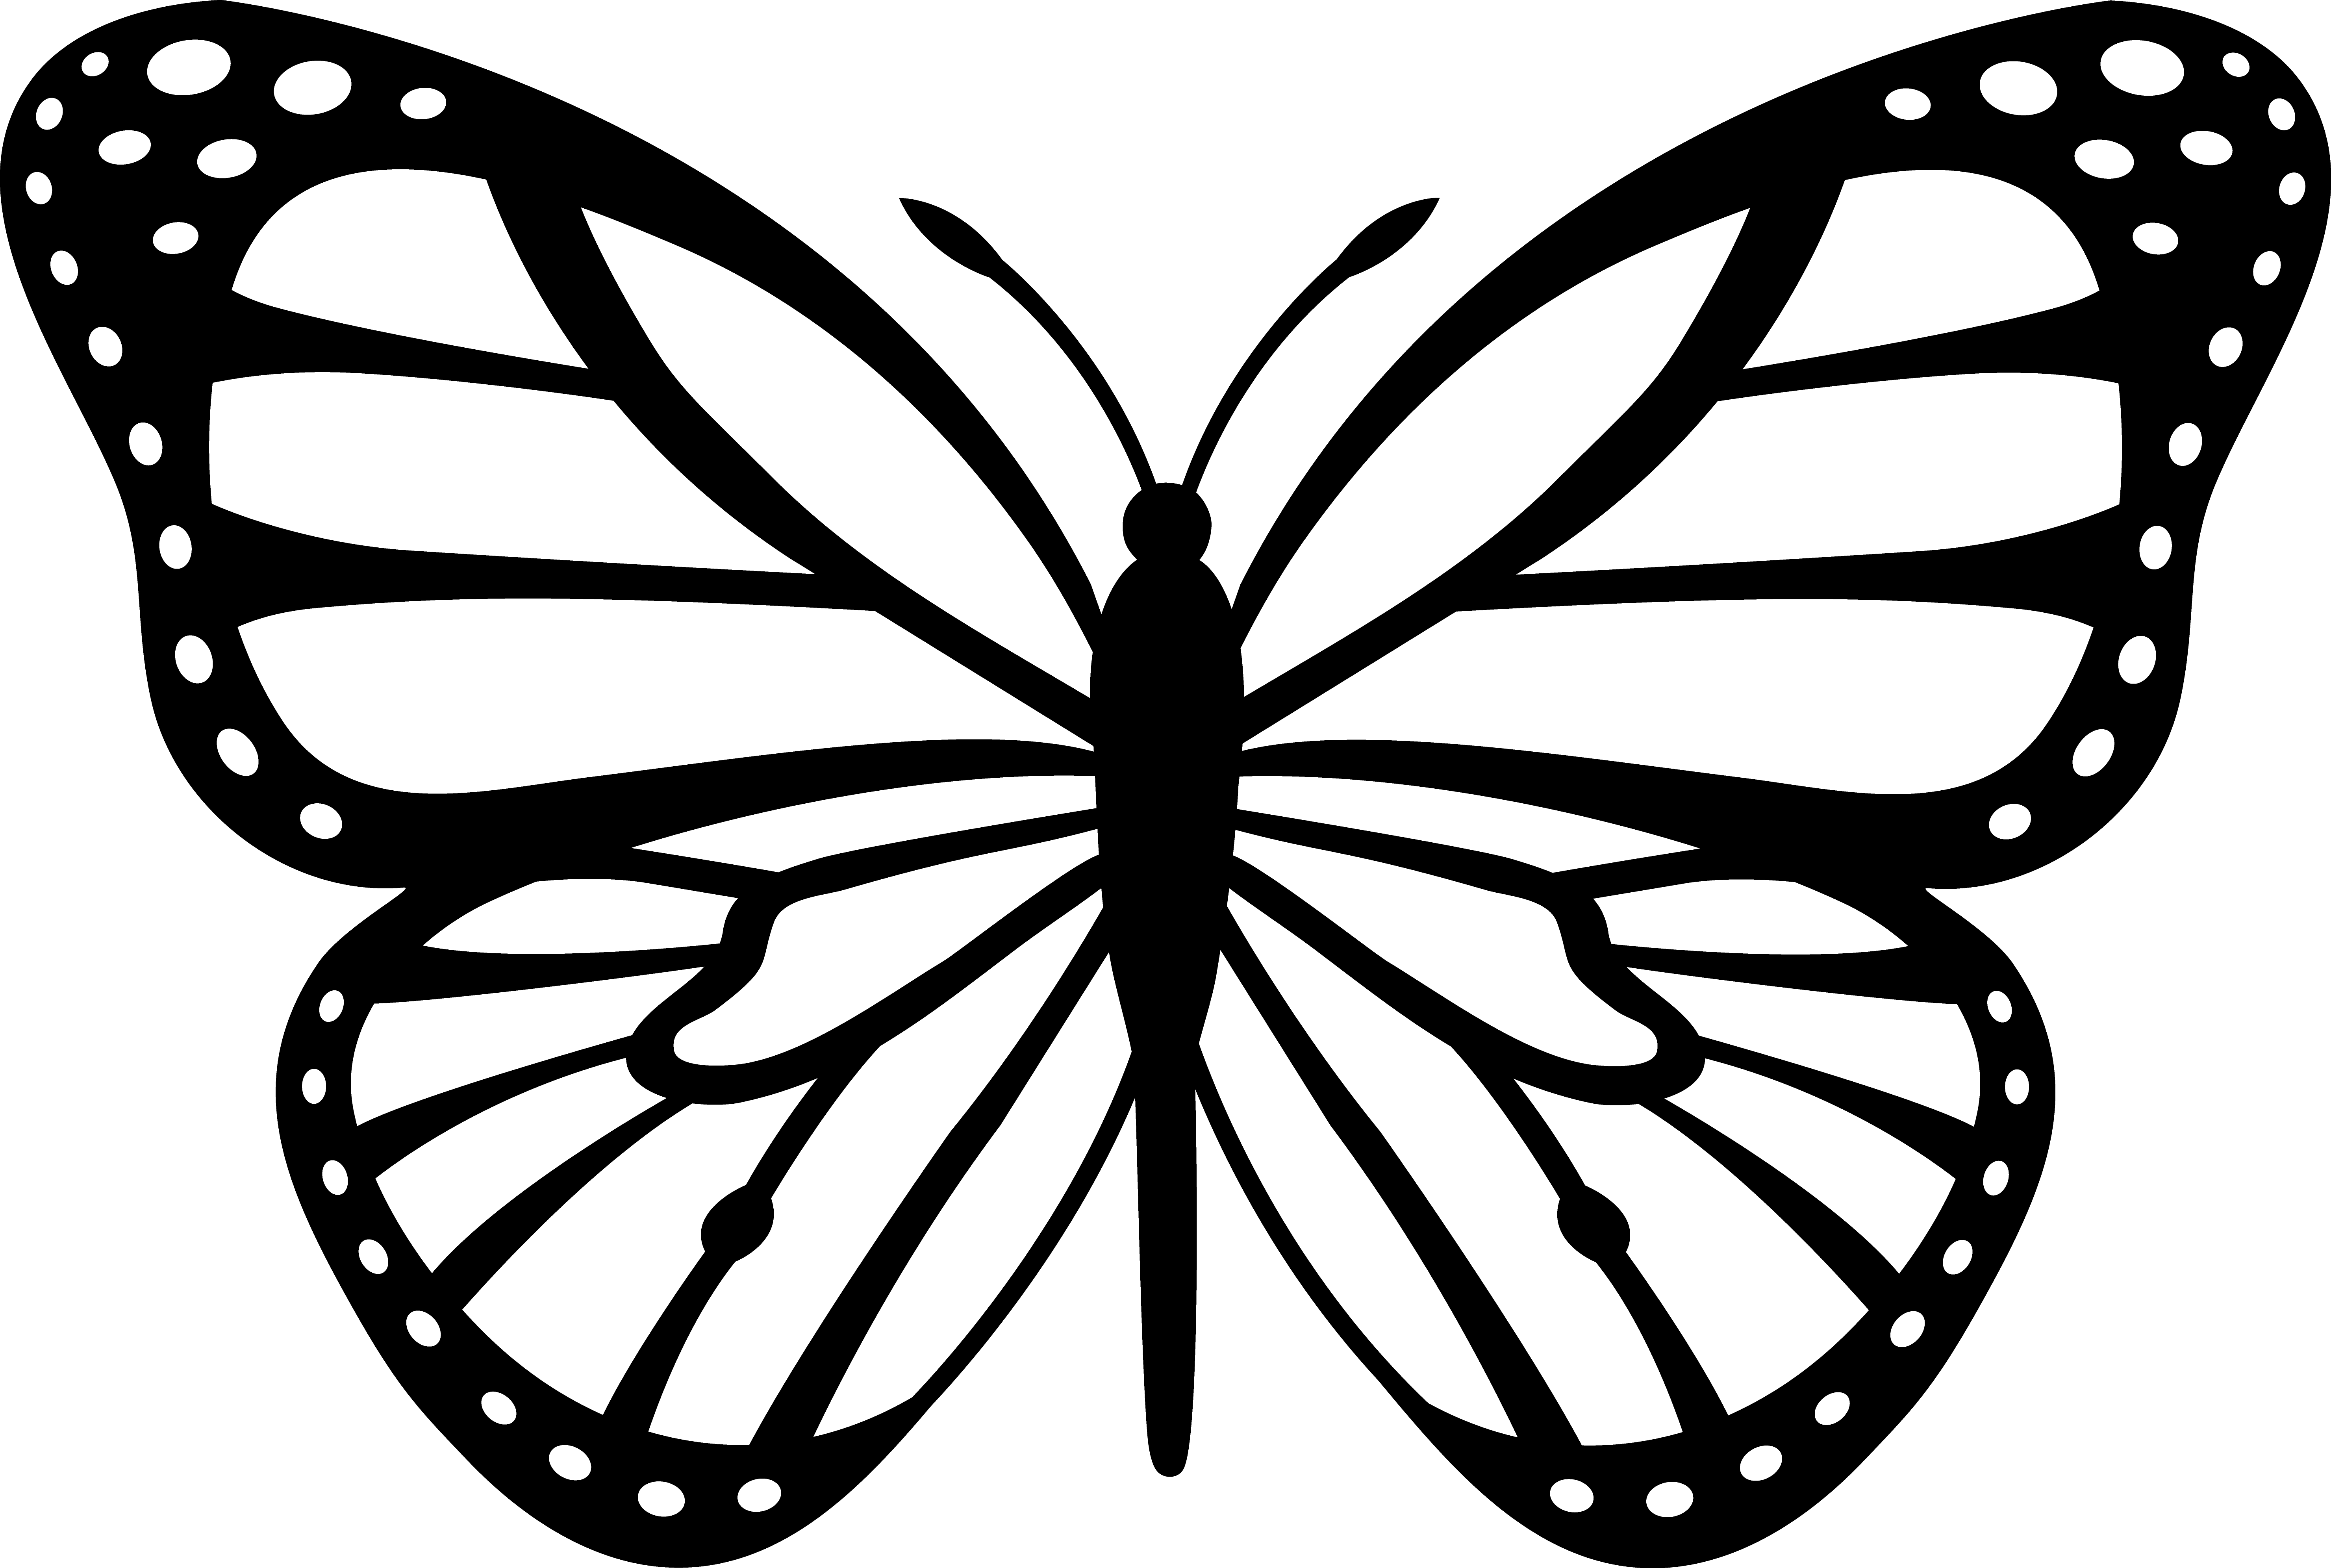 Pictures of monarch butterflies for coloring - Monarch Butterfly Coloring Pages Print Ifiatus Lestari